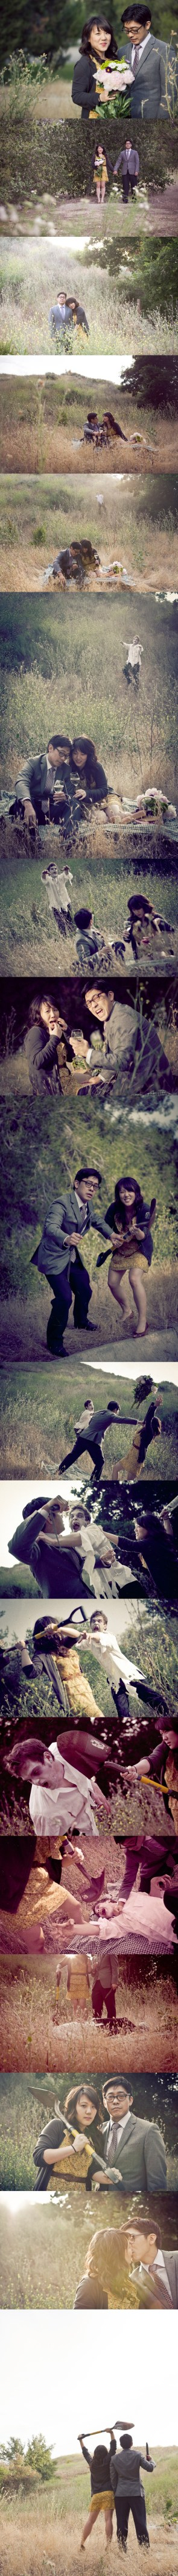 The best Wedding Photos Ever!!!